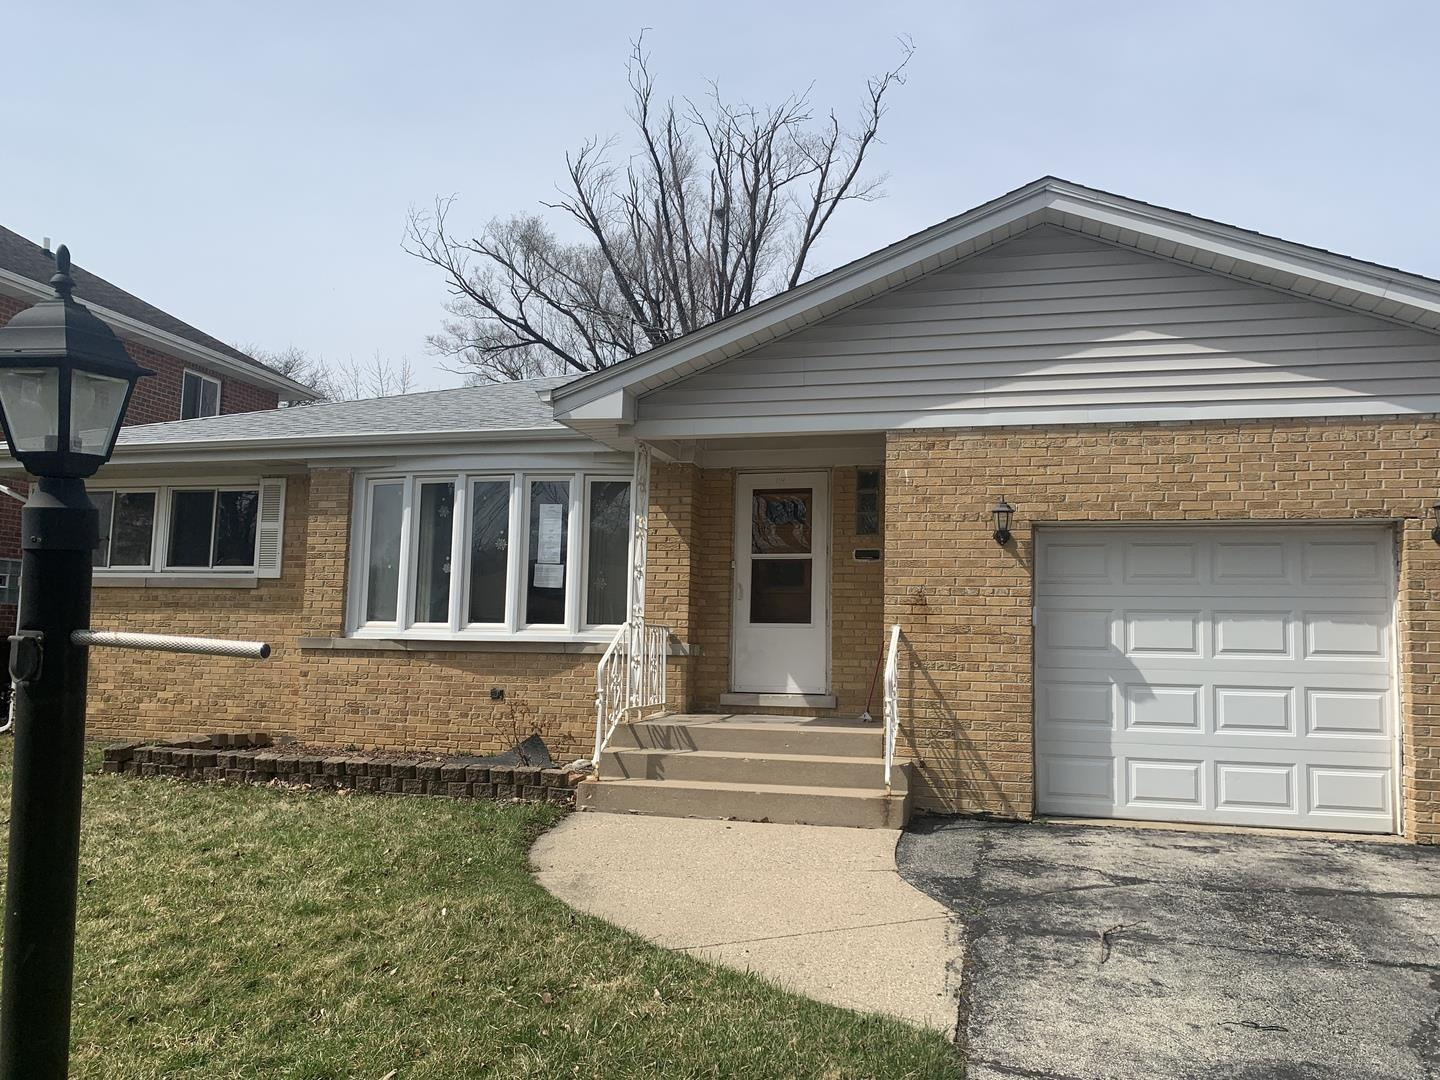 114 S Forrest Avenue, Arlington Heights, IL 60004 - #: 11045373